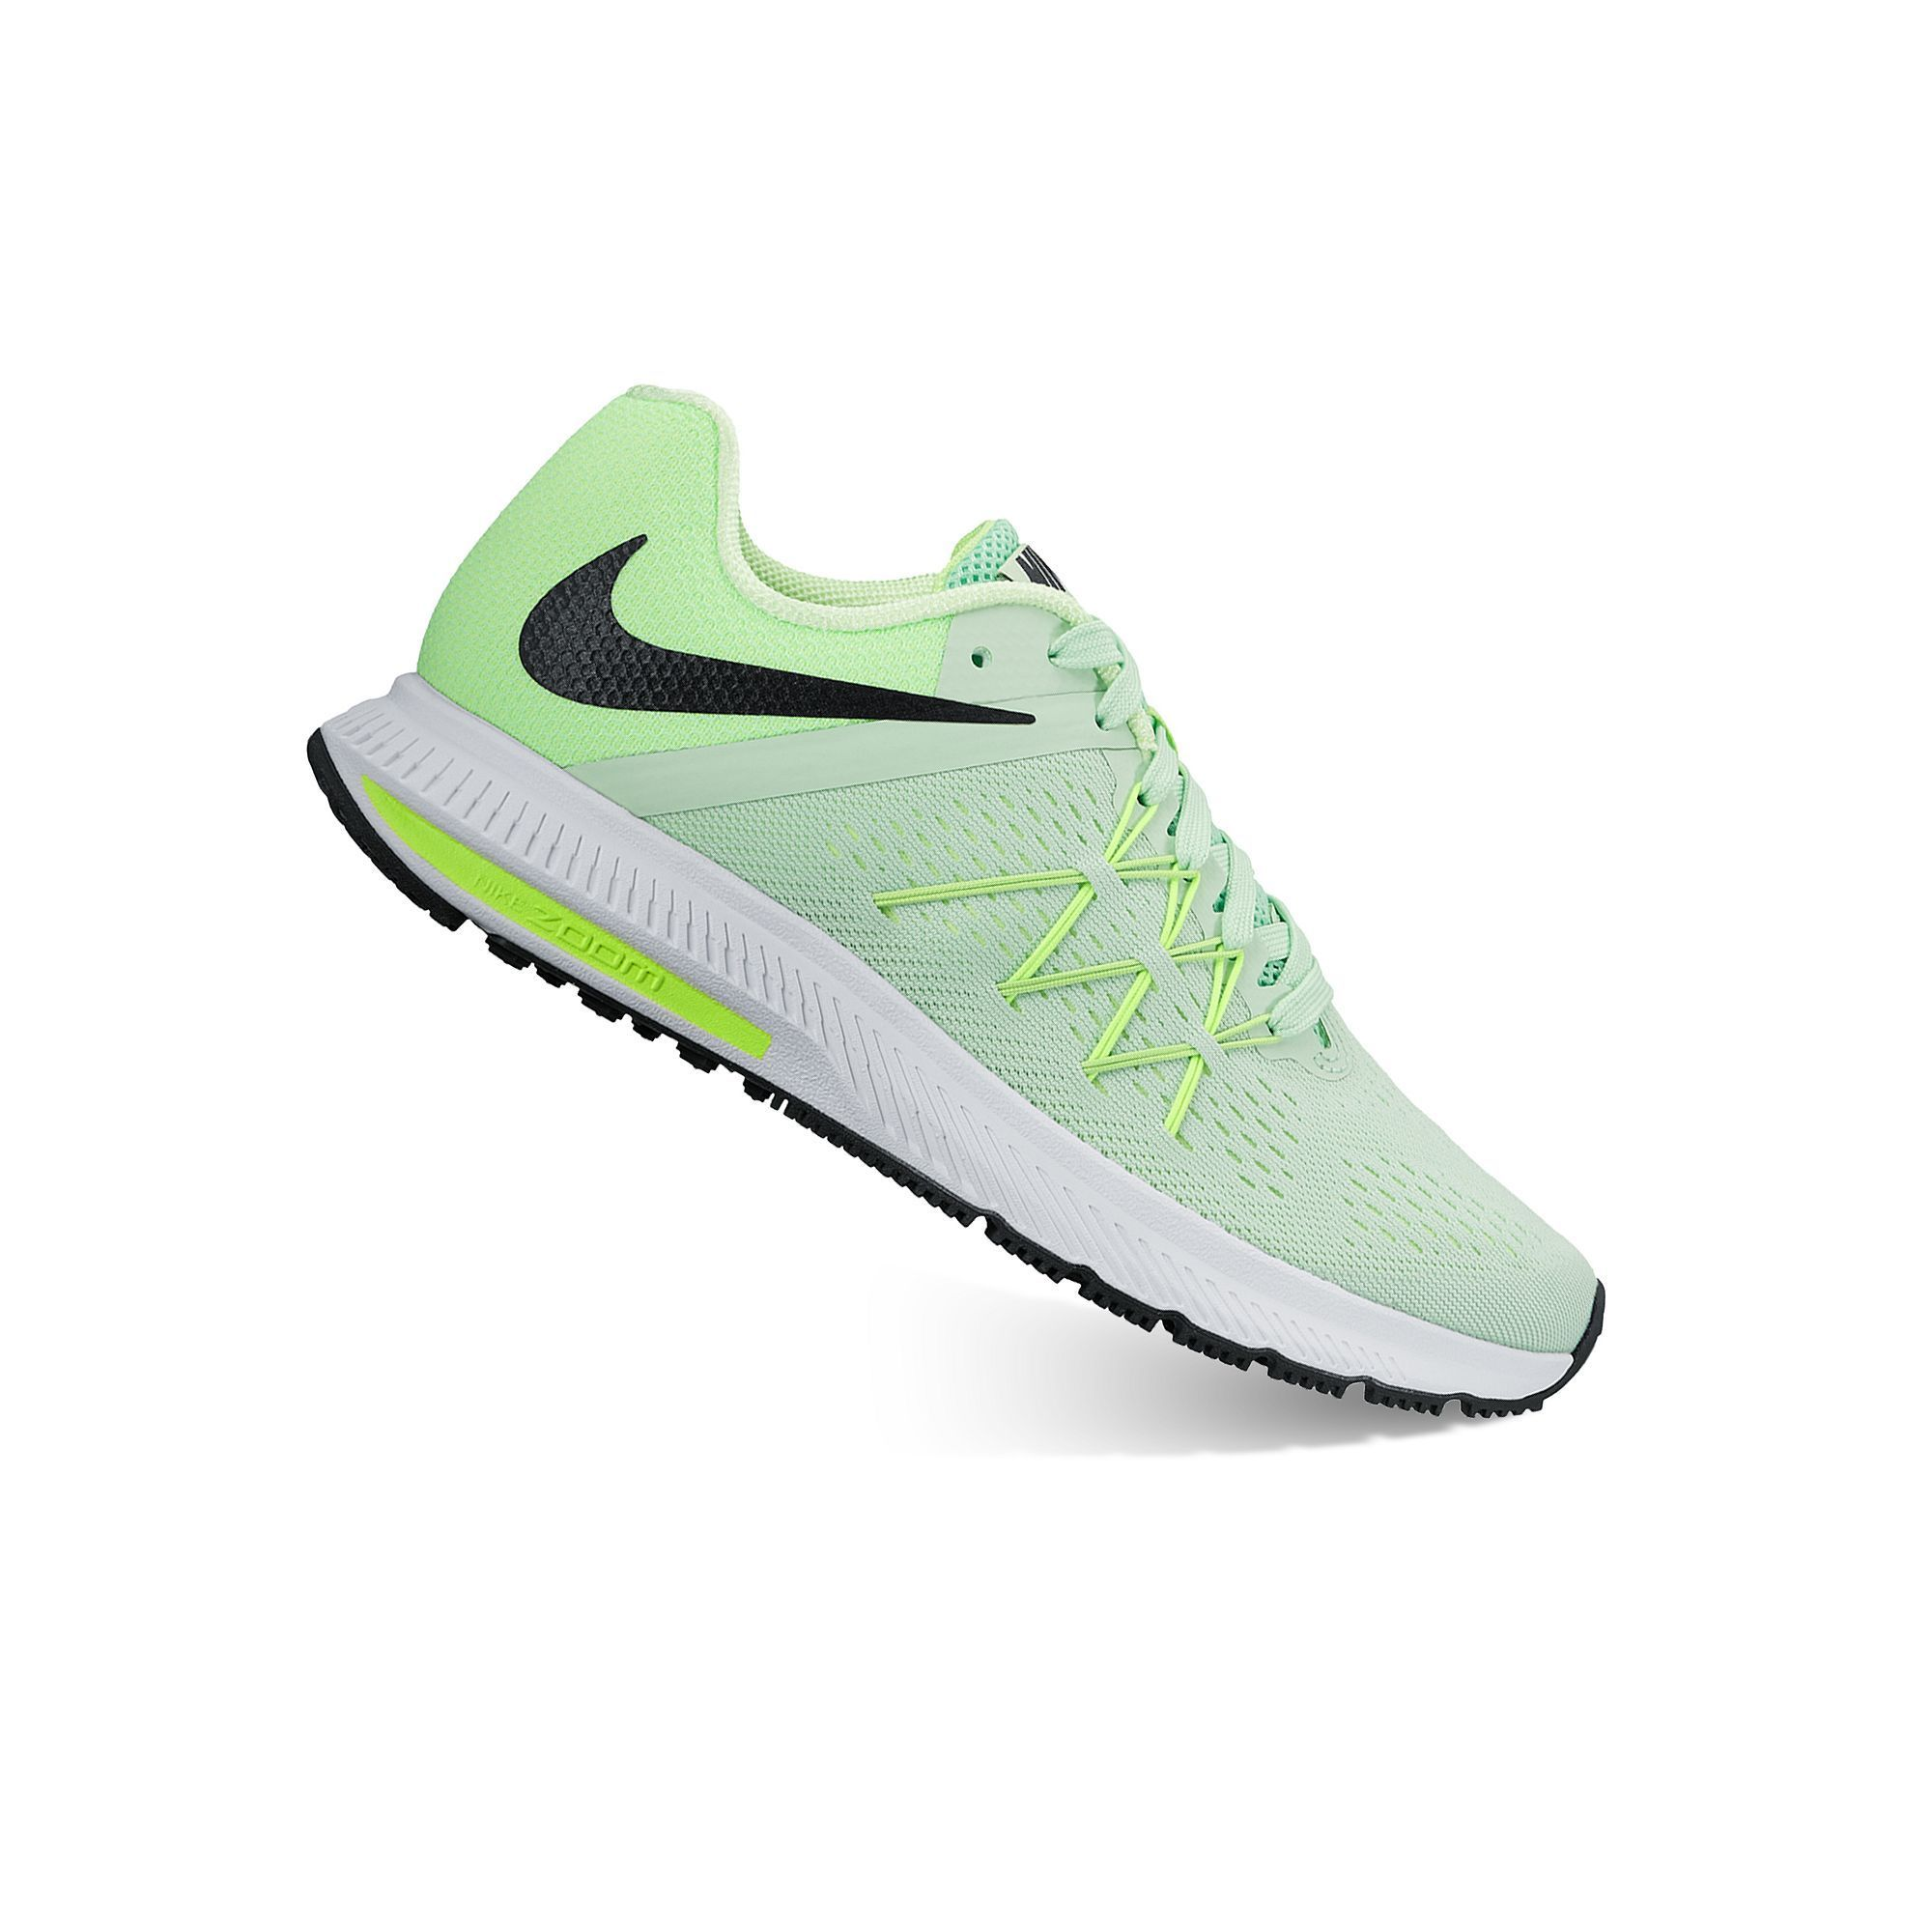 c tennis nike running sneakers comfortable s nordstrom comforter shoes women most womens athletic